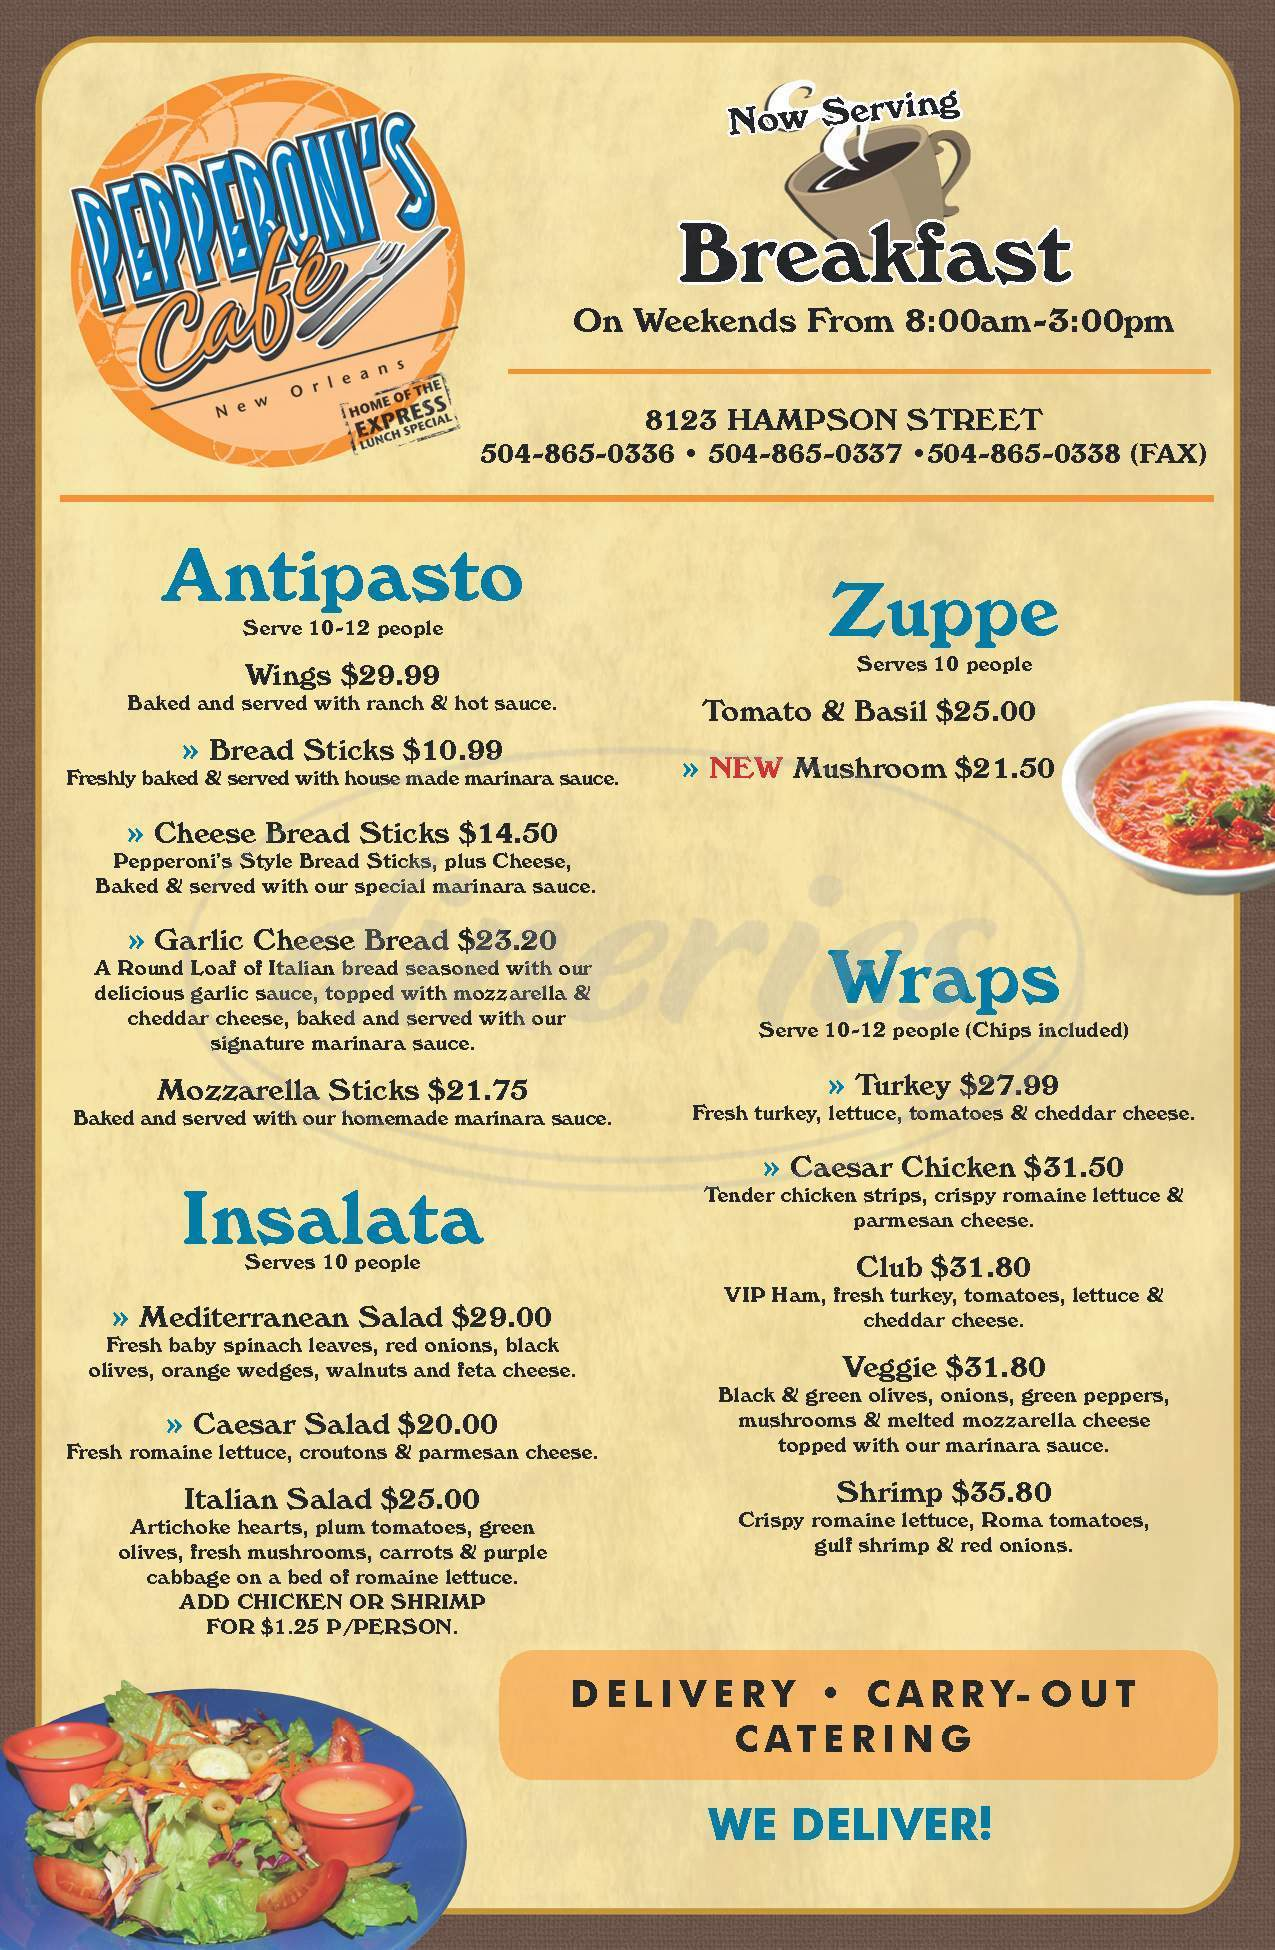 menu for Pepperoni's Cafe